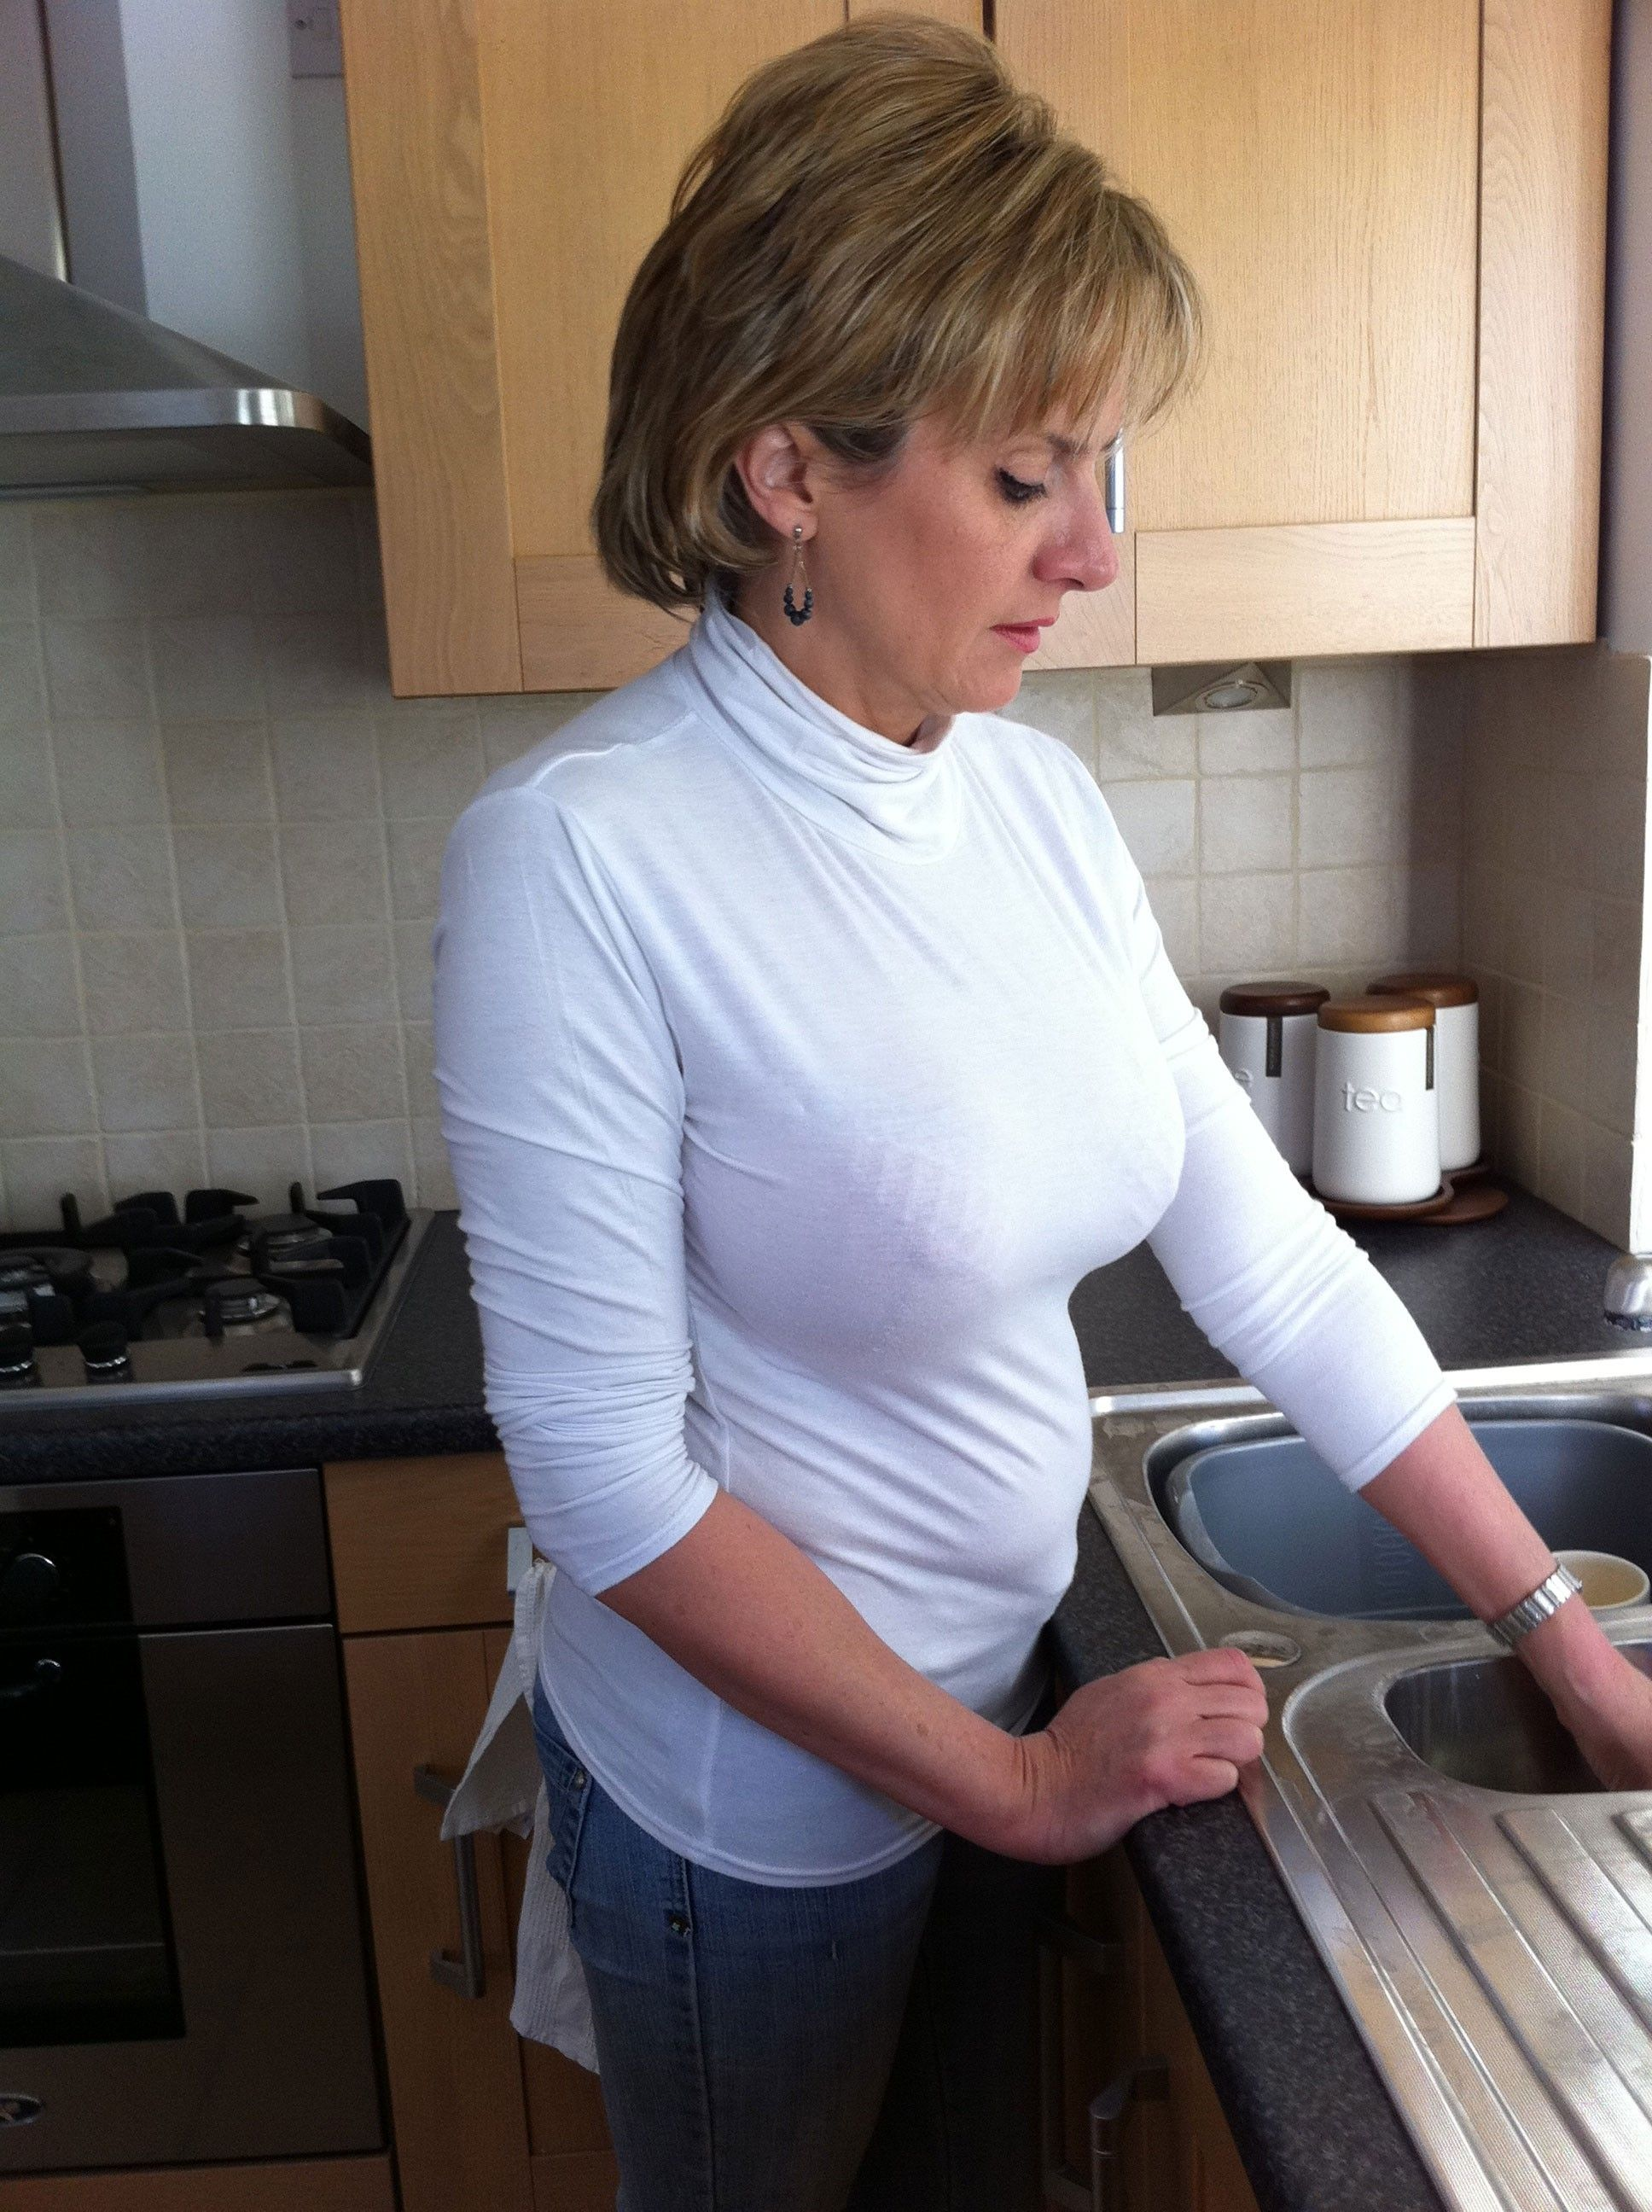 Pin by riley o on busty pinterest polo neck and curves for Naked in kitchen pics